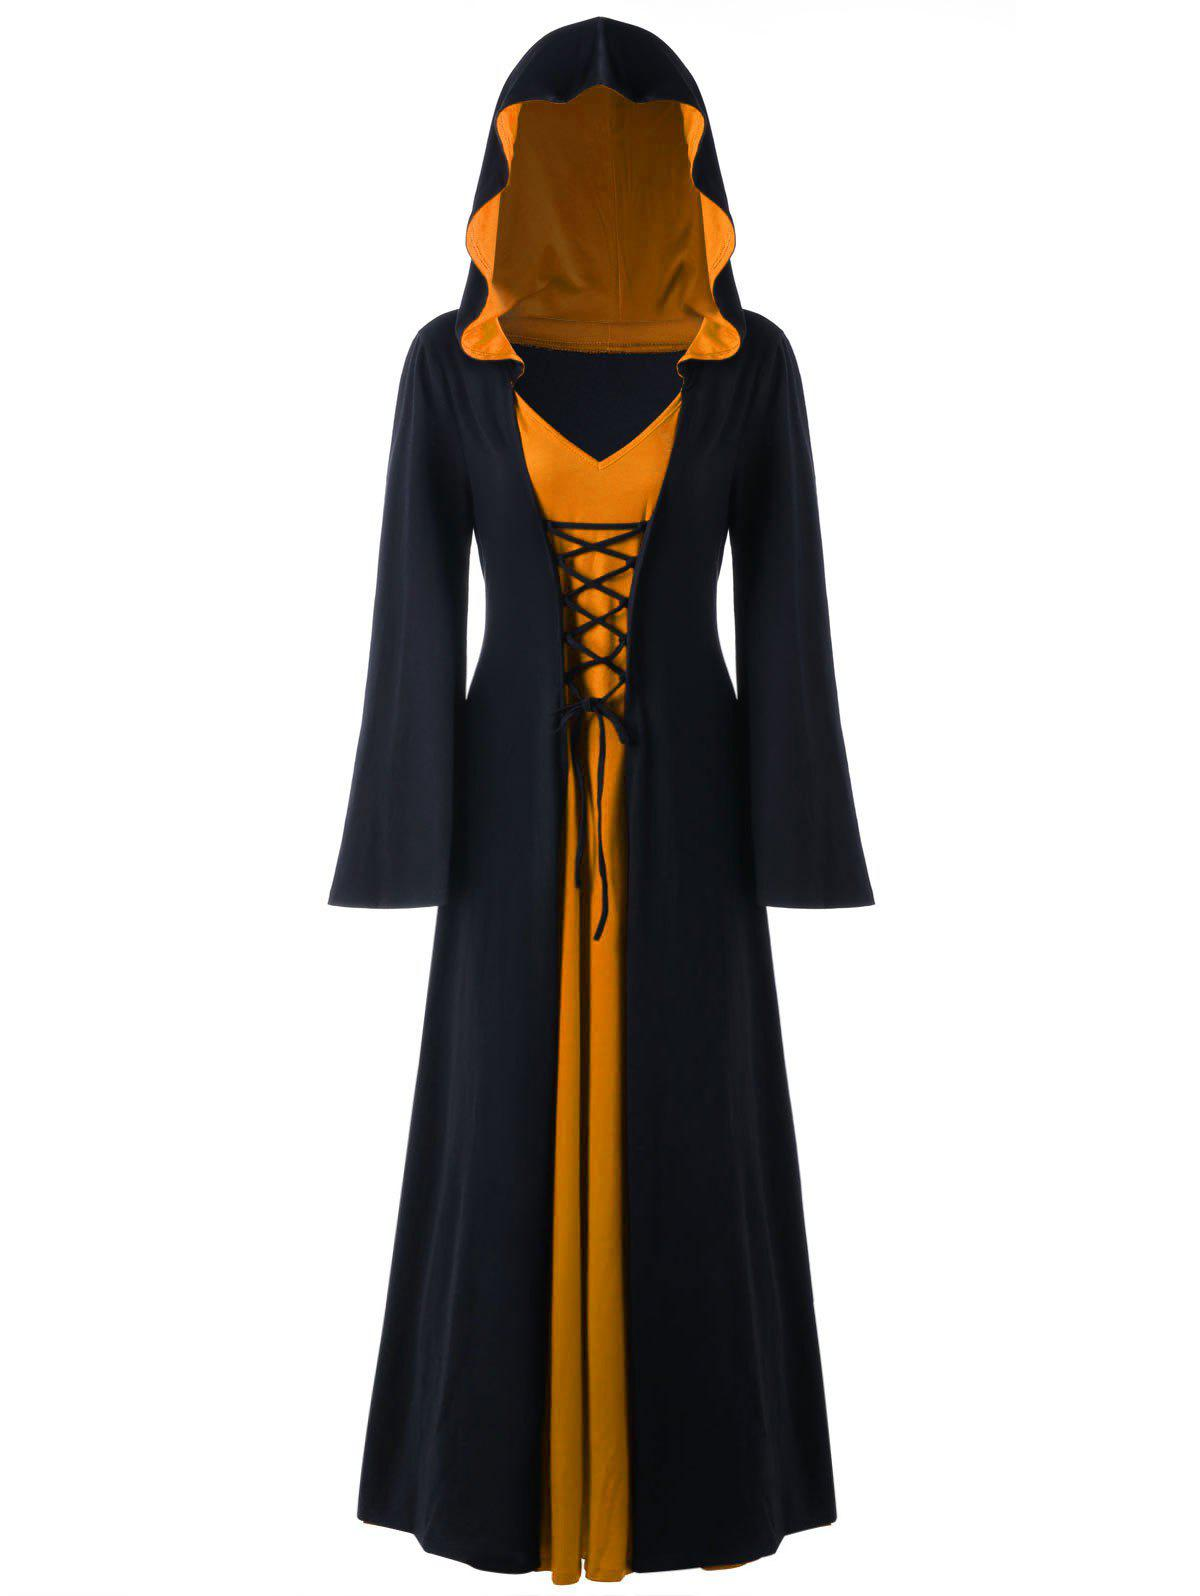 Halloween Plus Size Lace Up Hooded Maxi DressWOMEN<br><br>Size: 5XL; Color: BLACK AND ORANGE; Style: Novelty; Material: Polyester,Spandex; Silhouette: A-Line; Dresses Length: Ankle-Length; Neckline: Hooded; Sleeve Length: Long Sleeves; Pattern Type: Solid; With Belt: No; Season: Fall,Spring; Weight: 0.6700kg; Package Contents: 1 x Dress;